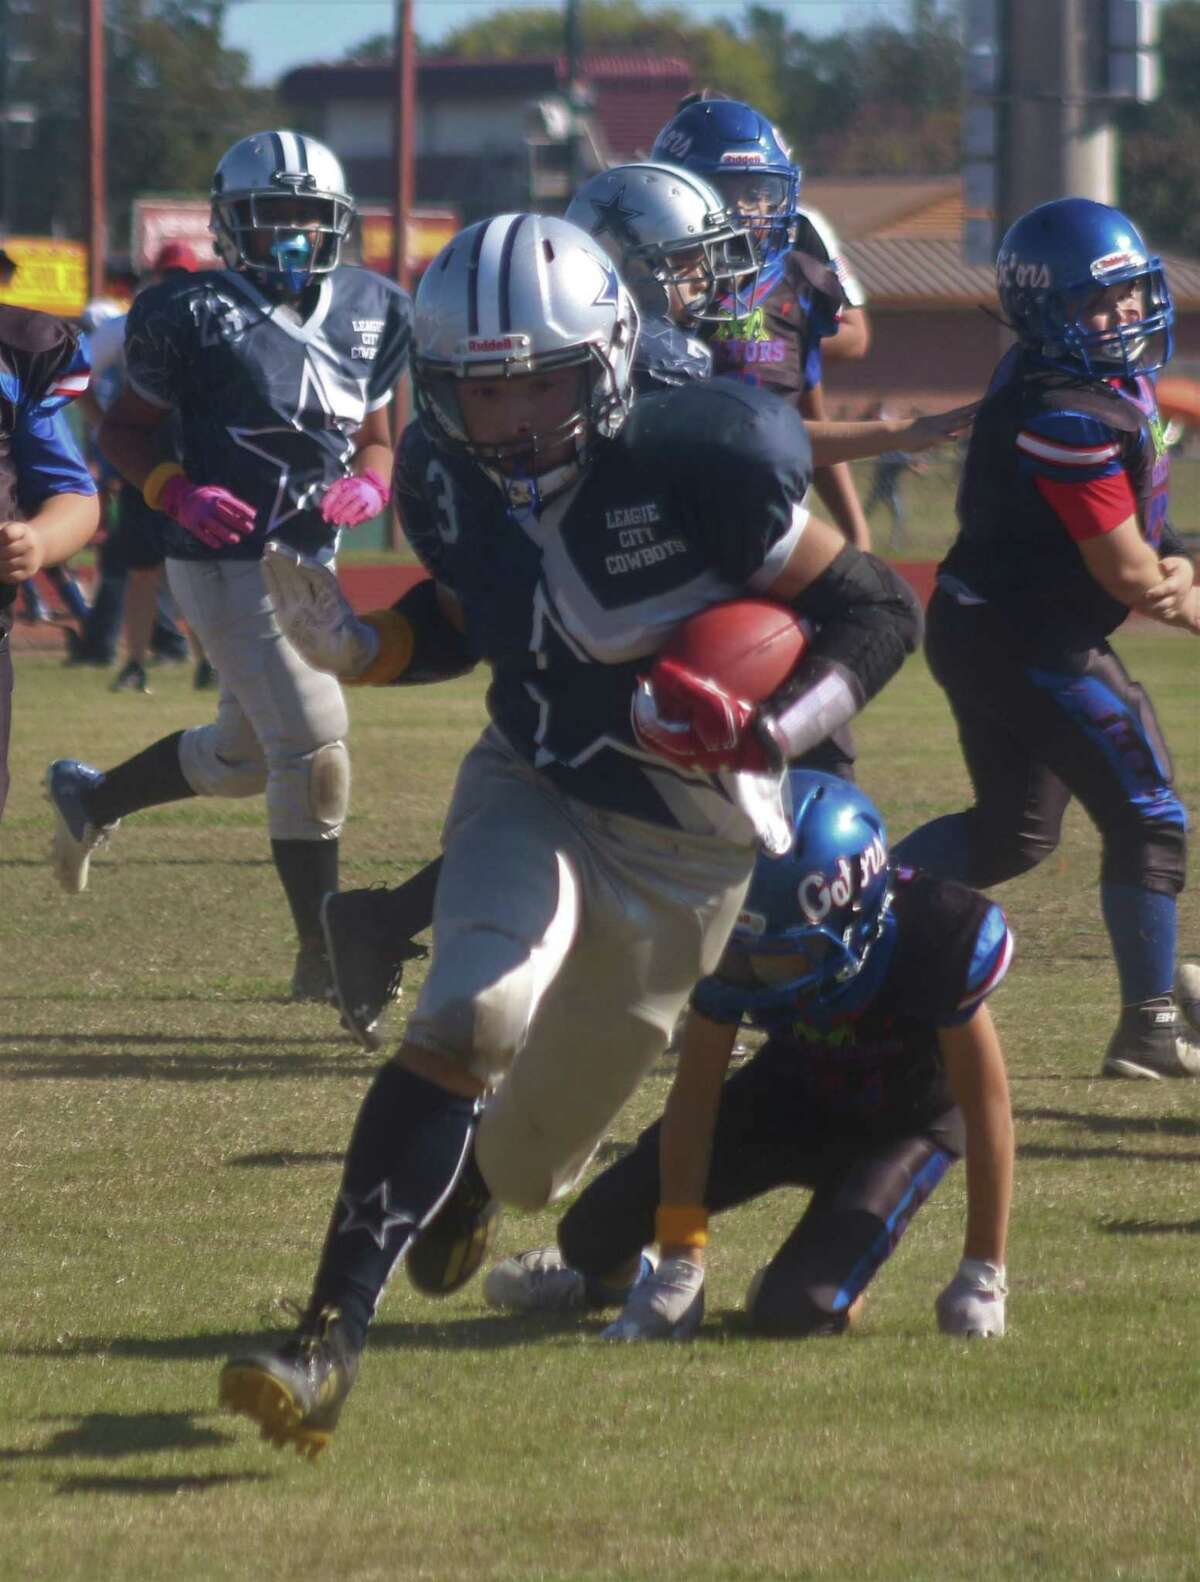 League City Senior Cowboy running back Michael Pugh, Jr., motors for some of the 200 yards he chewed up Saturday afternoon. He scored twice in the 25-18 loss.